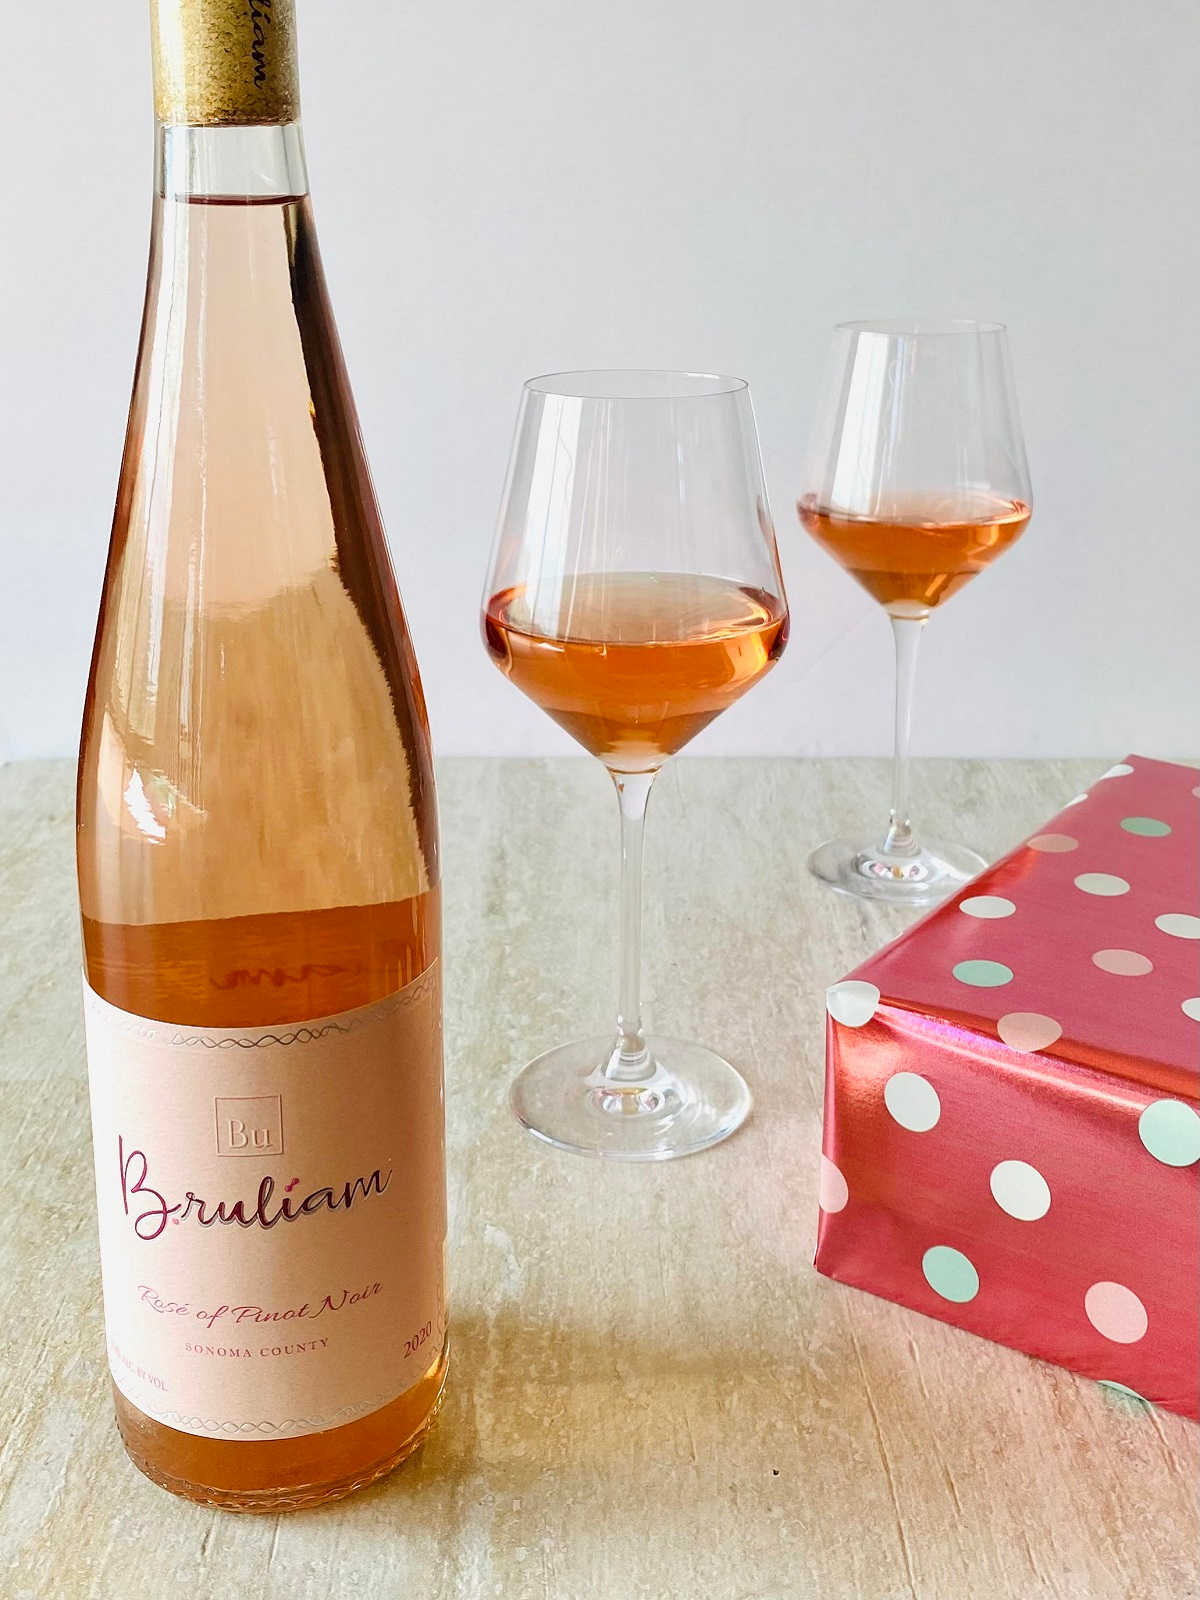 bottle of bruliam wine next to 2 glasses of wine and a wrapped pink present